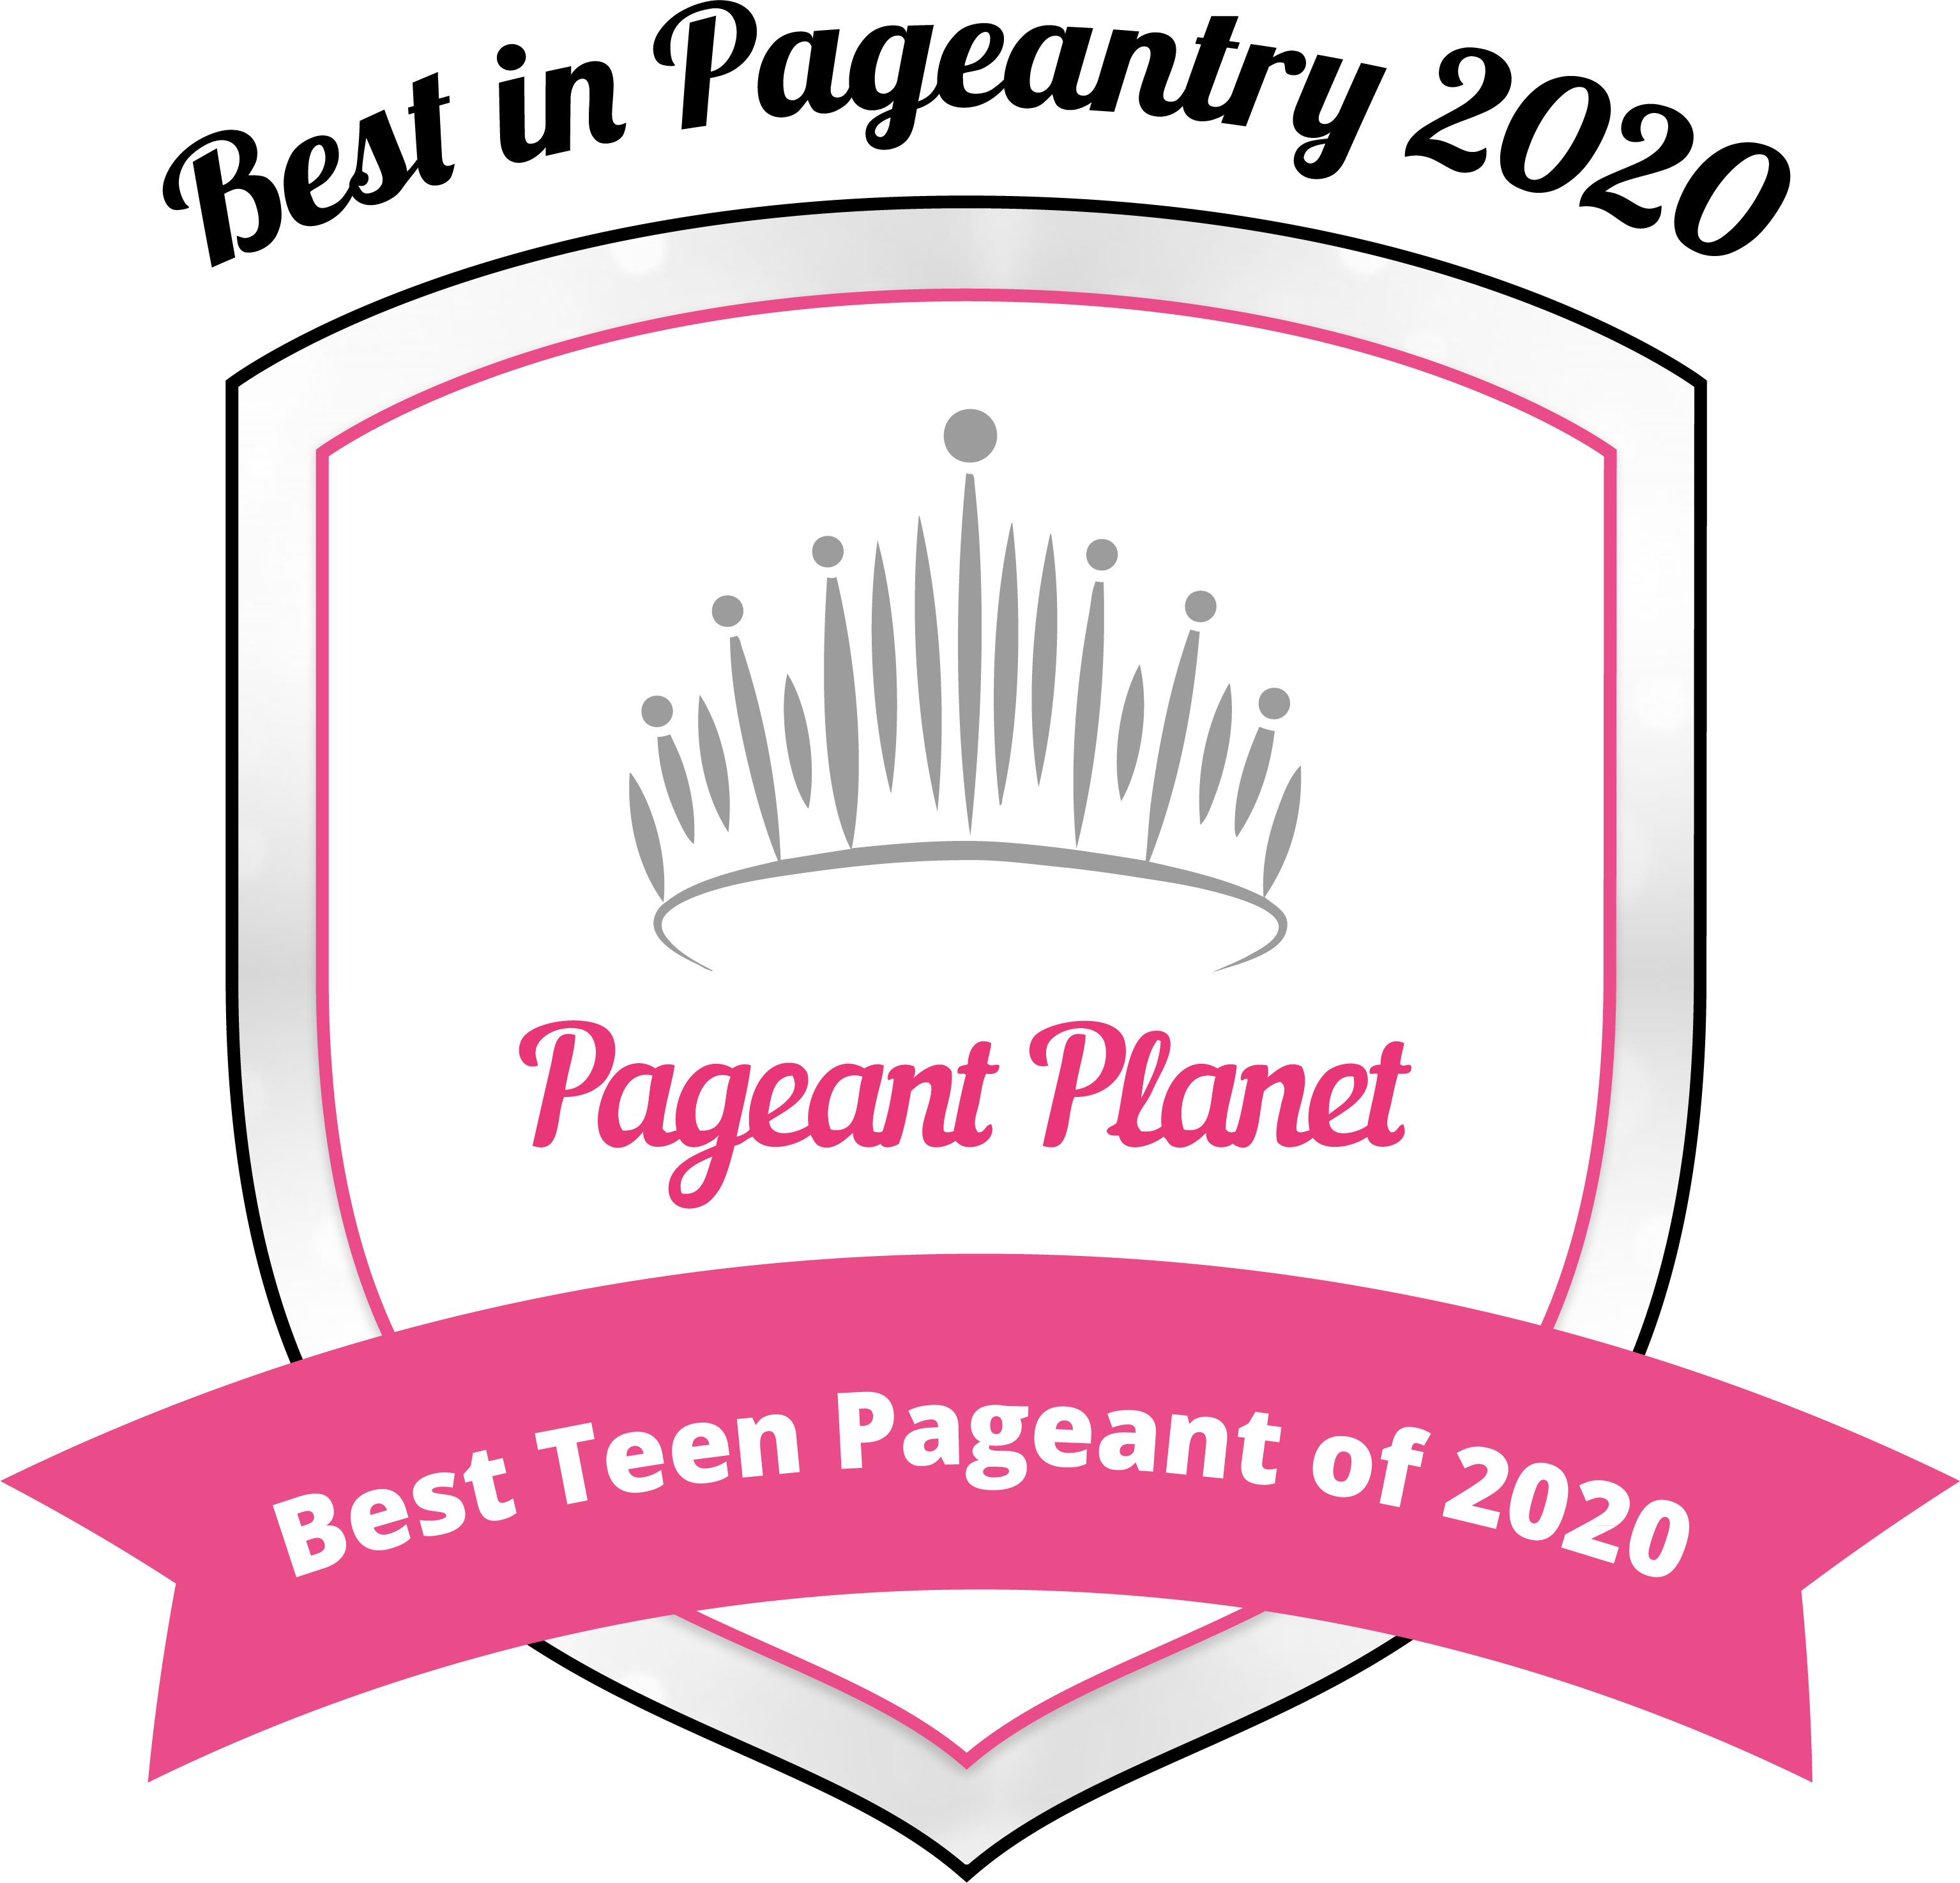 Best Teen Pageant of 2020